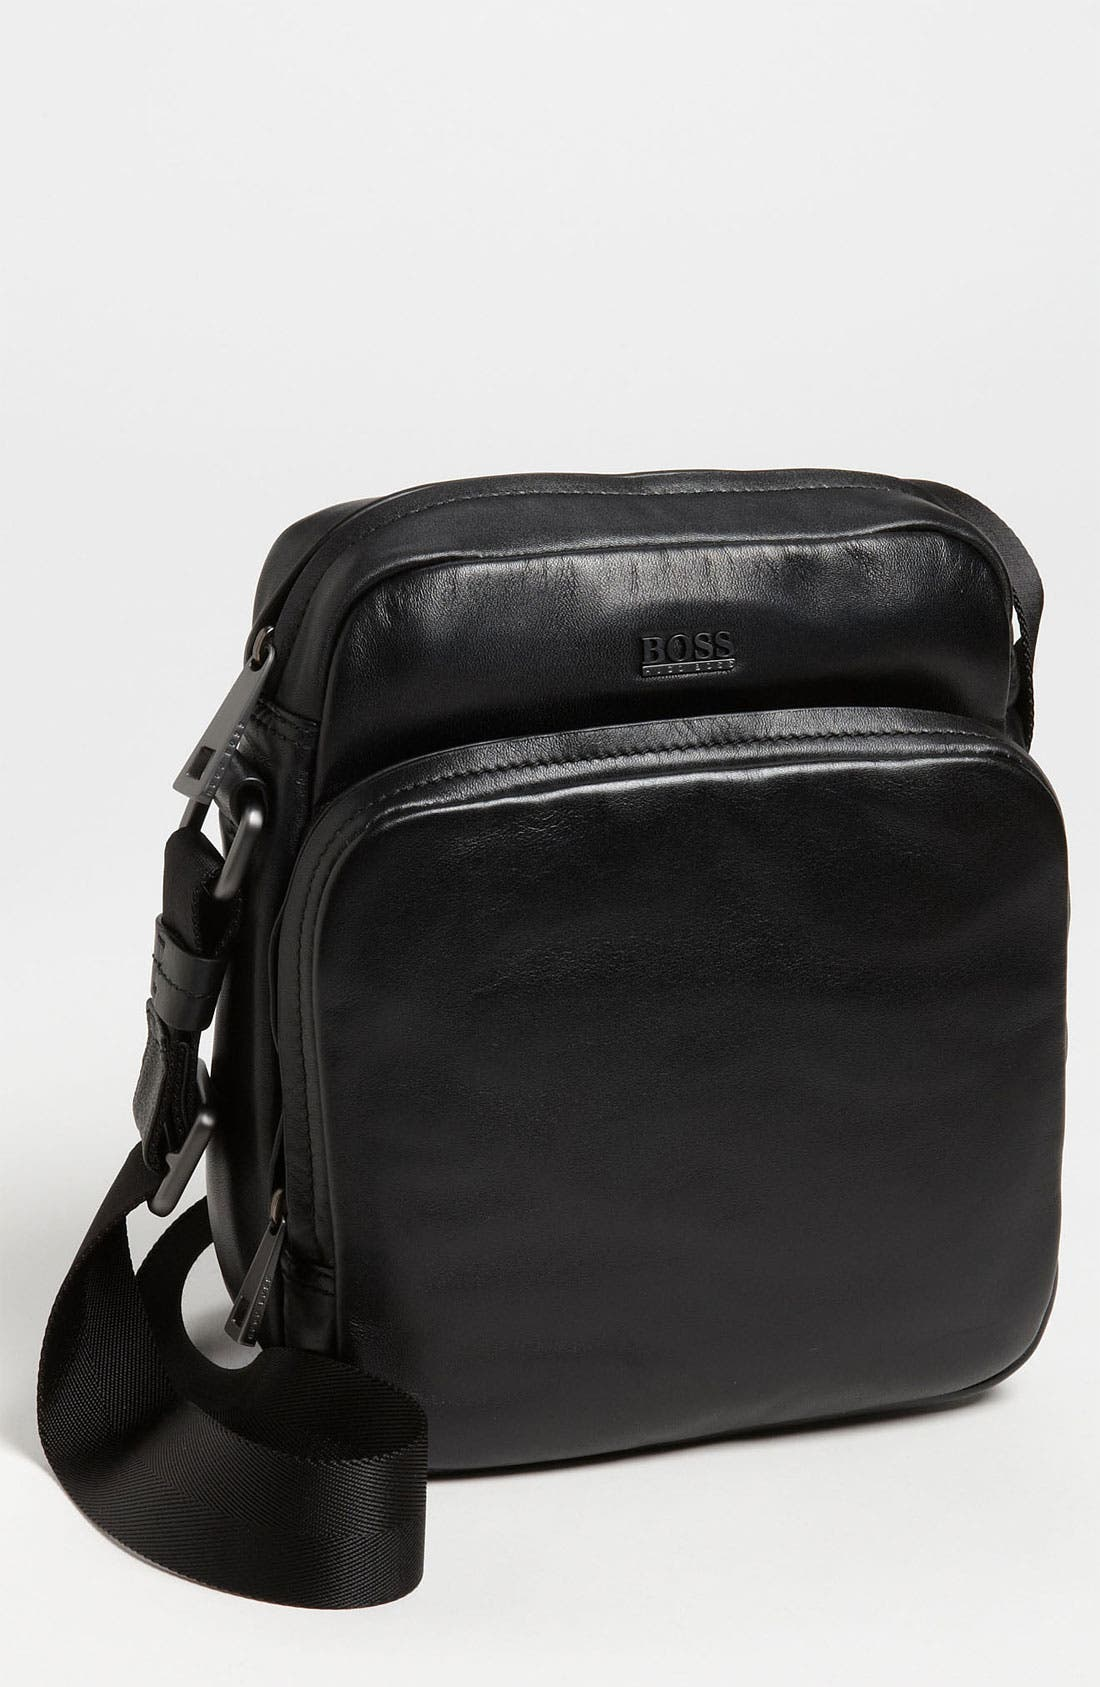 Alternate Image 1 Selected - BOSS Black 'Kunsty' Messenger Bag